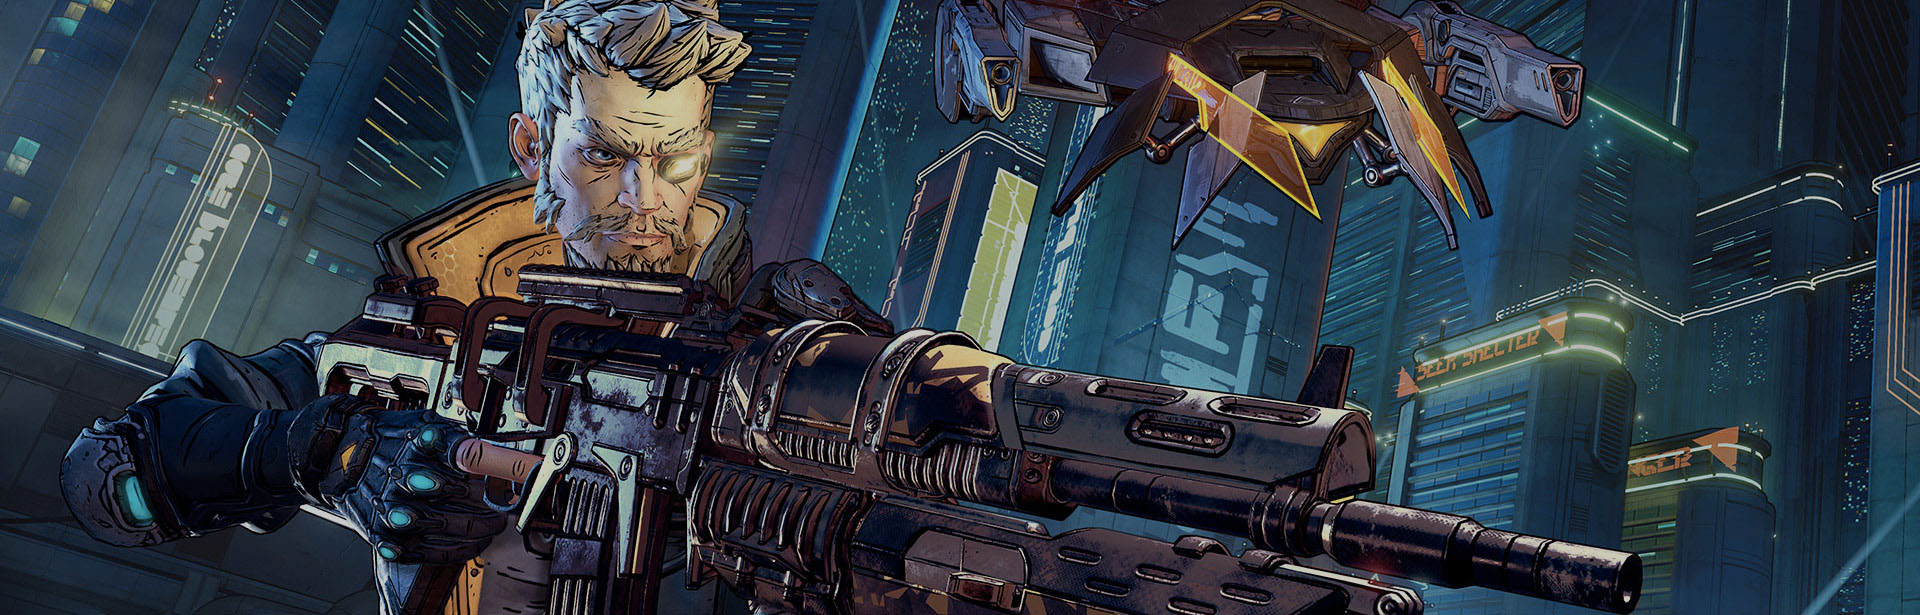 Improving Your Aim in Borderlands 3 header